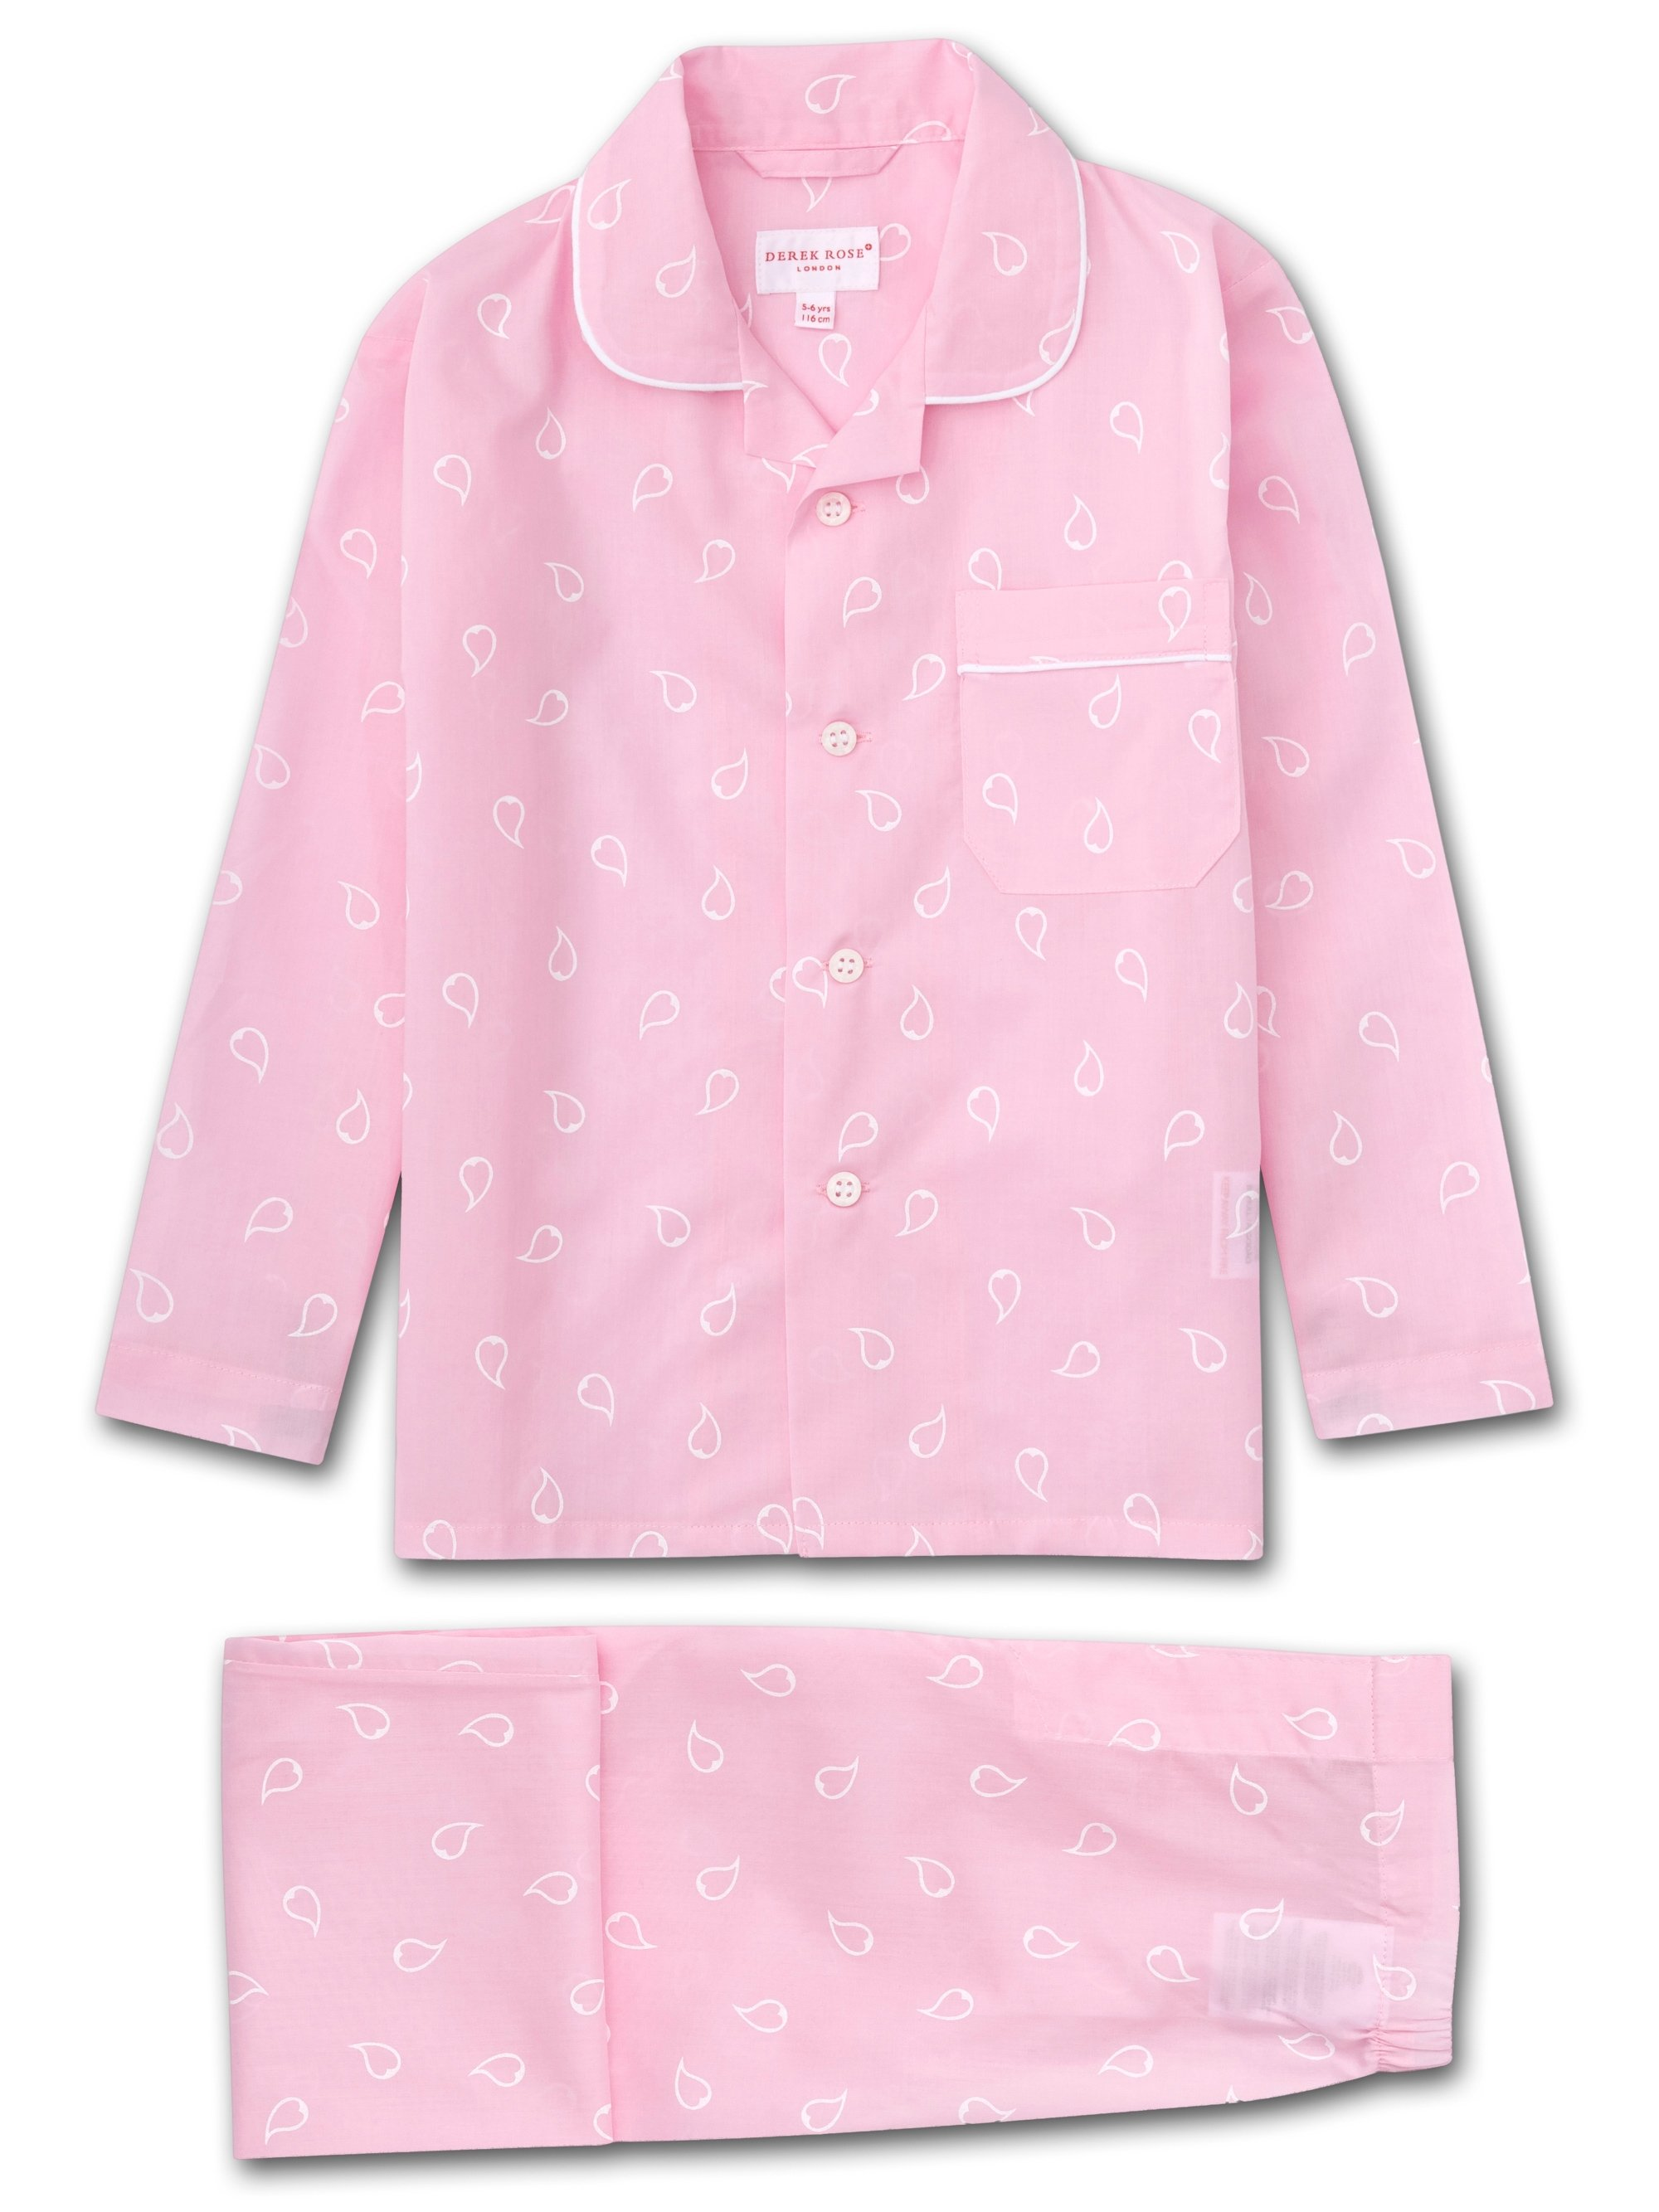 Kids' Pyjamas Nelson 74 Cotton Batiste Pink